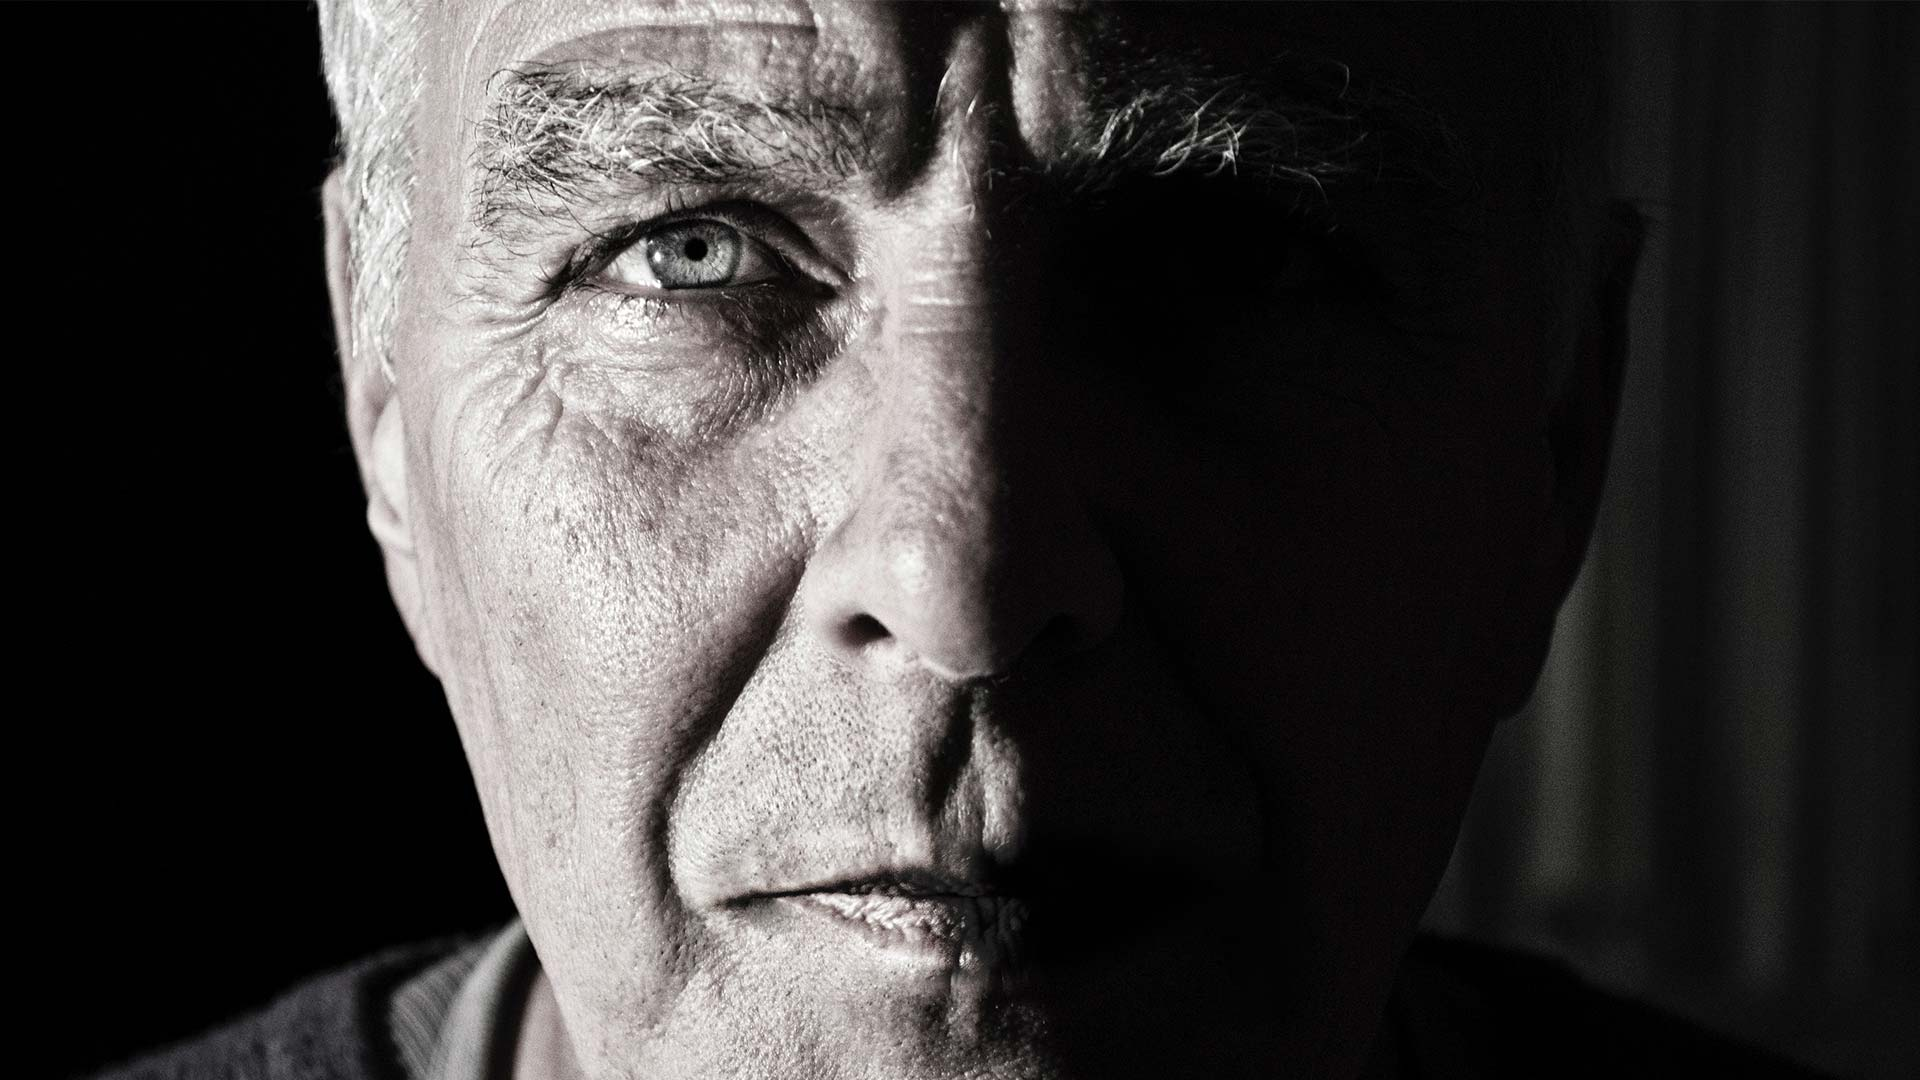 man's face focused on his eye